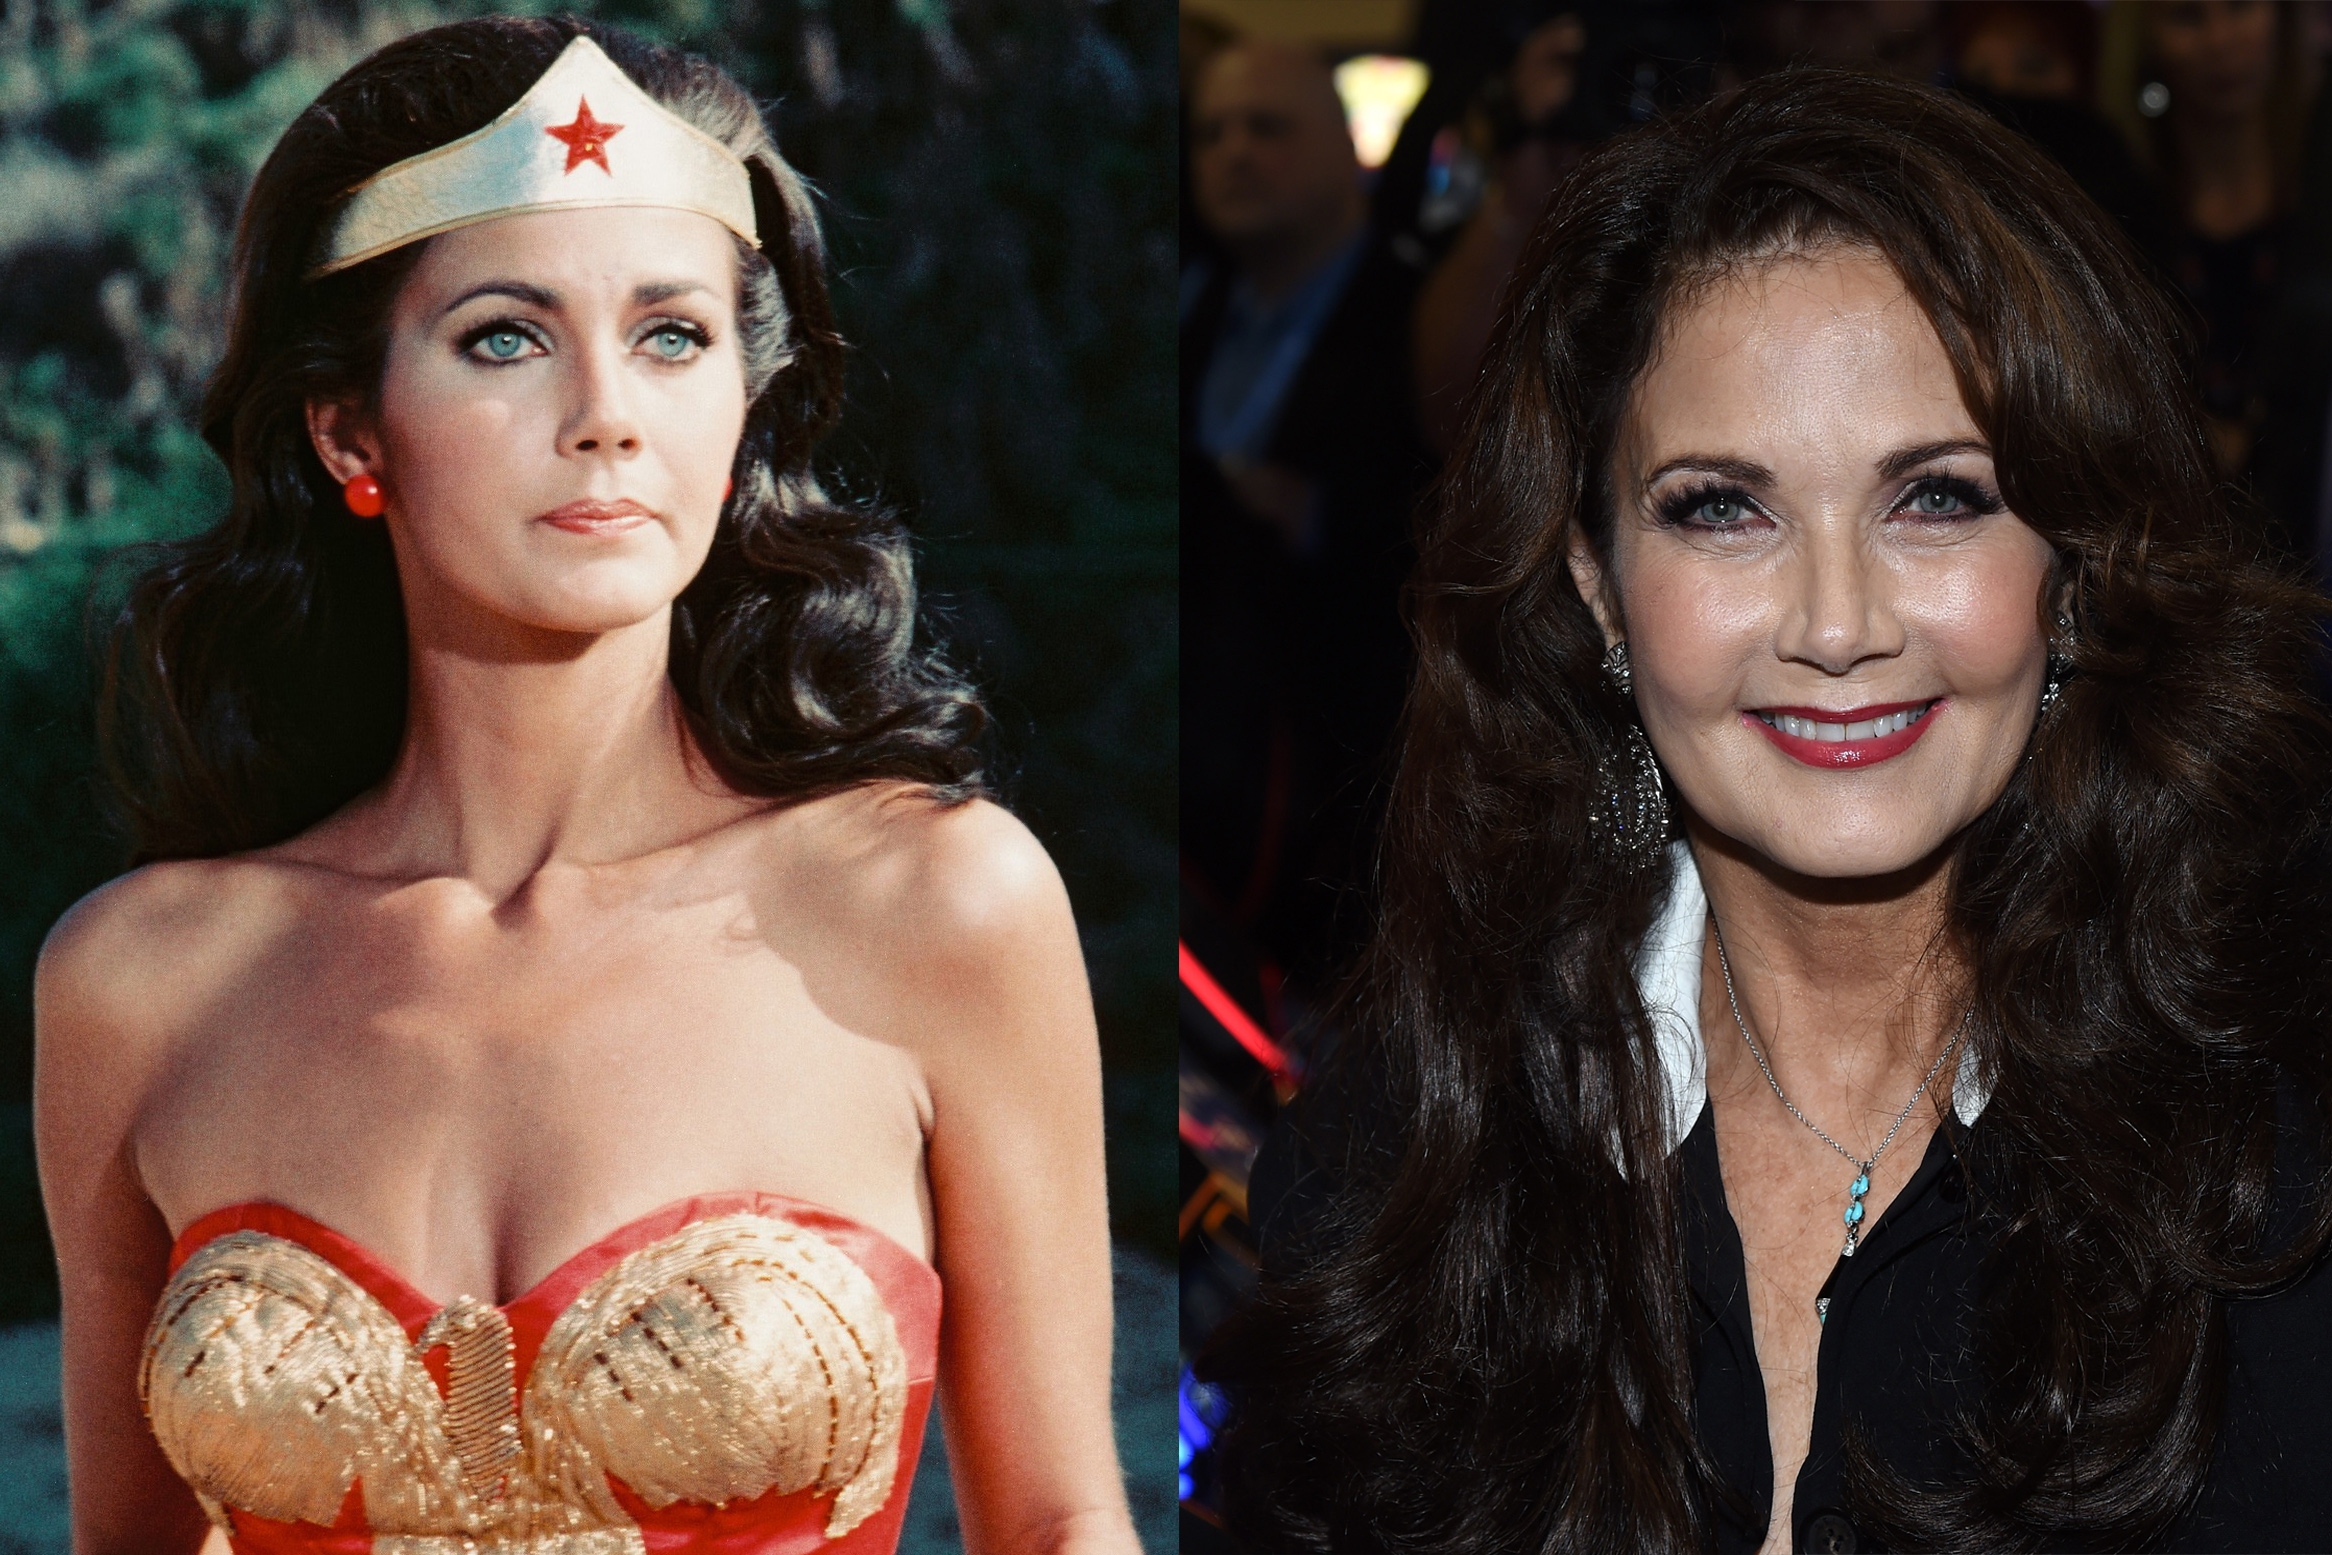 Lynda Carter starred in the Wonder Woman TV series from 1975 to 1979. Since then, she's made lots of self-referential appearances on shows like Smallville and Two and a Half Men.